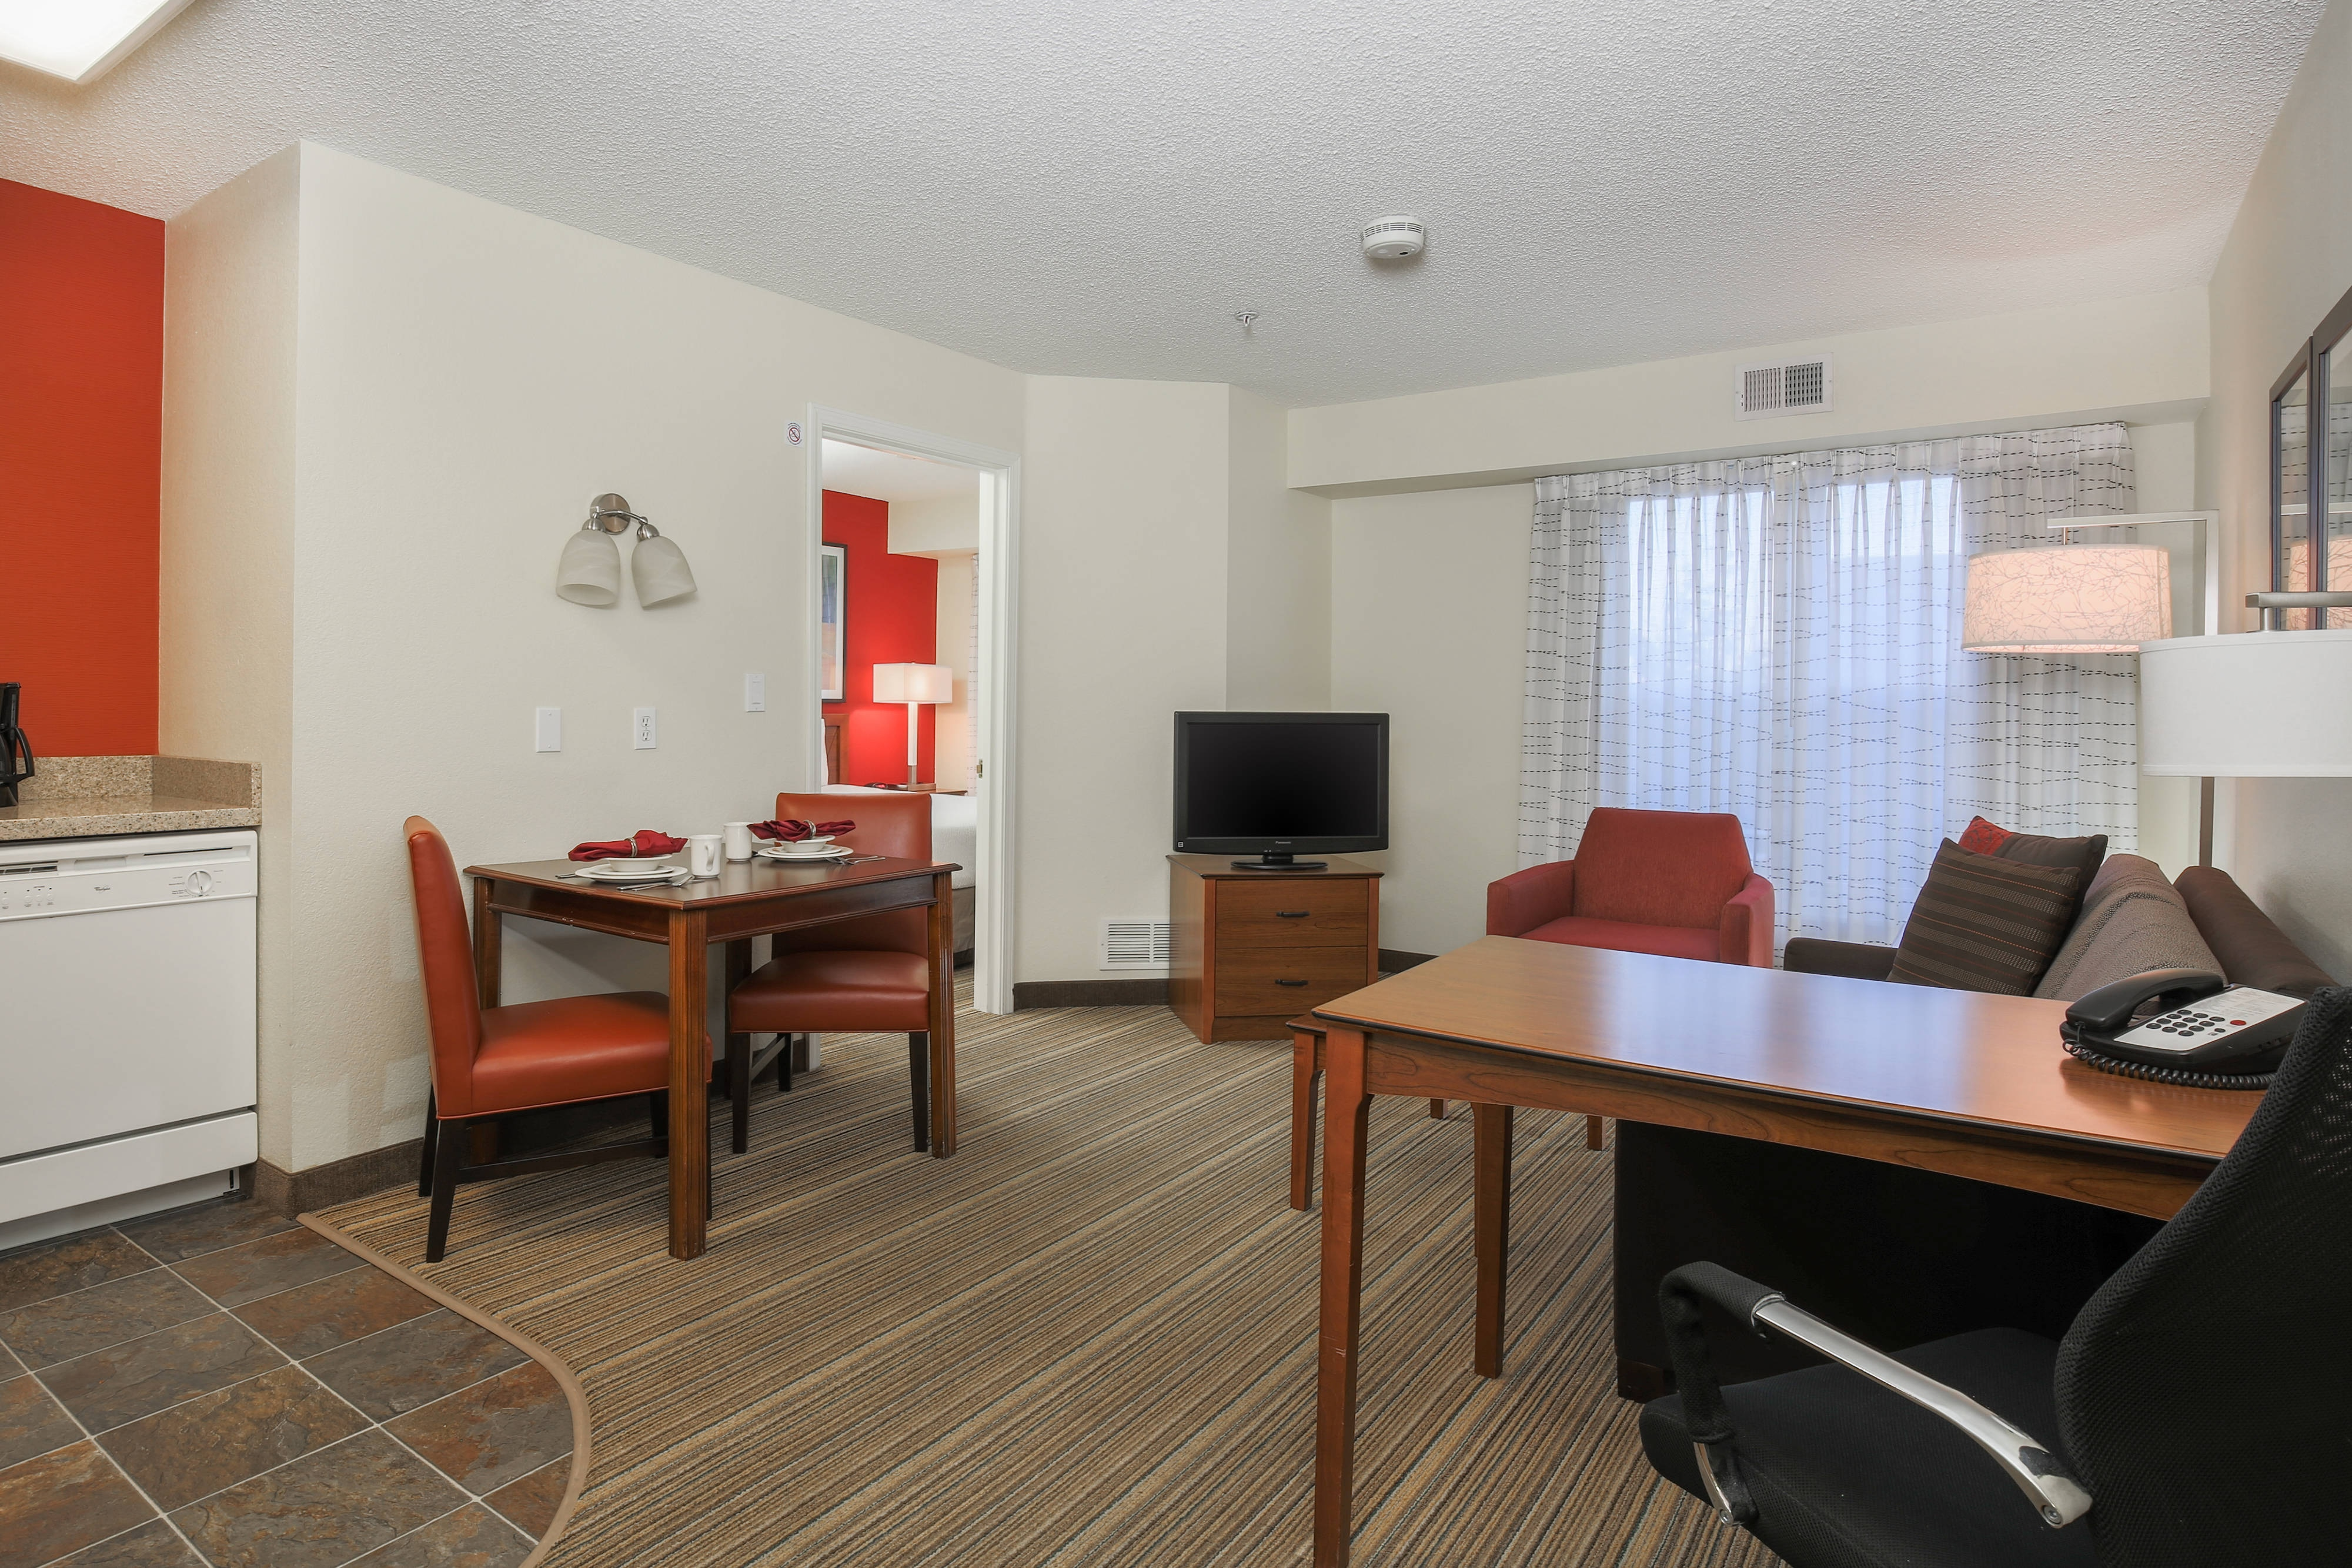 airport orleans in hotels suite hotel clsc hor suites miami inn bedroom new rooms residence miaas